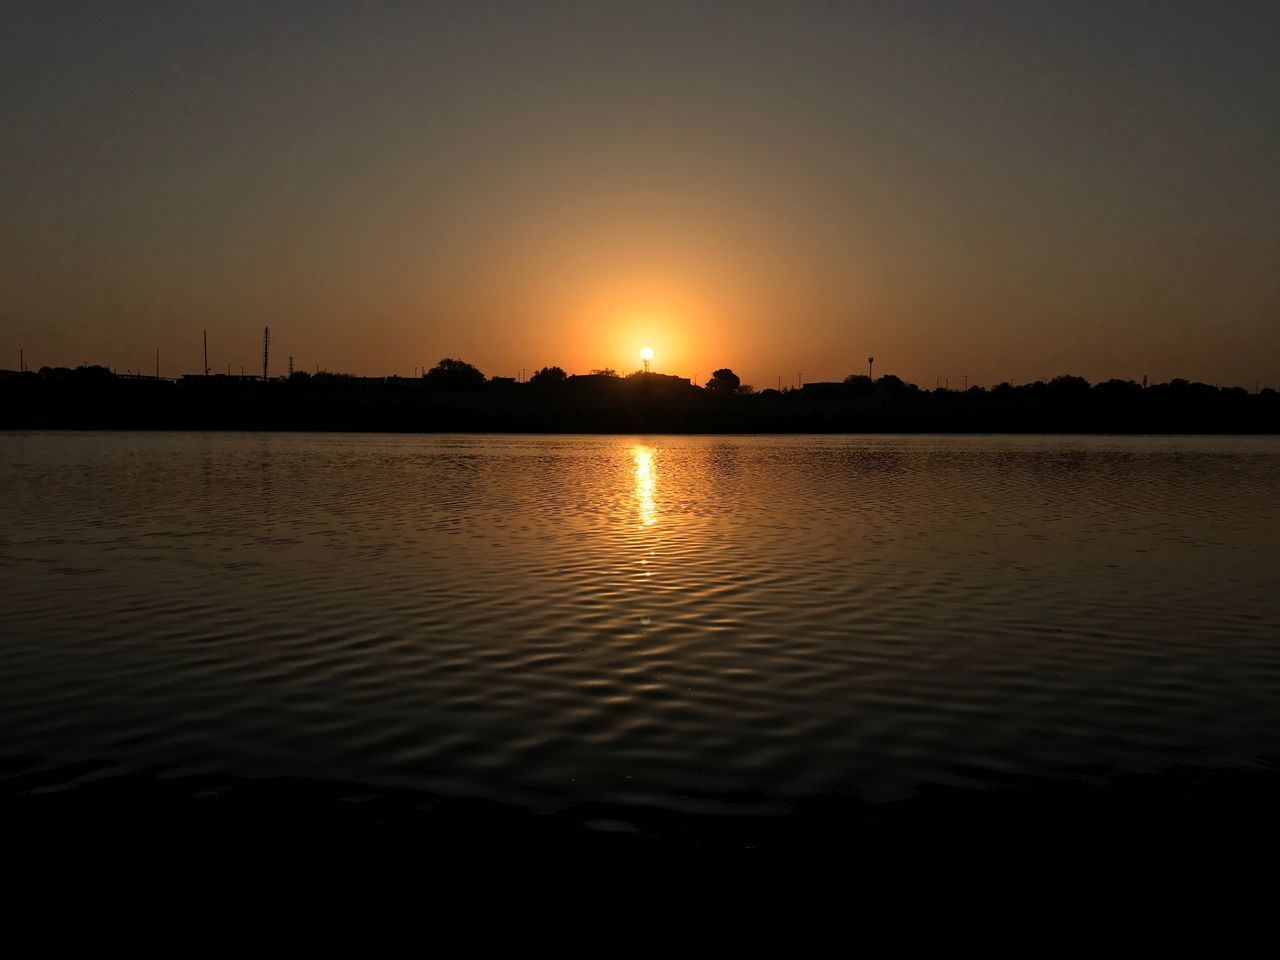 sunset, sun, silhouette, tranquility, reflection, water, nature, tranquil scene, beauty in nature, scenics, sky, orange color, no people, outdoors, idyllic, sunlight, waterfront, lake